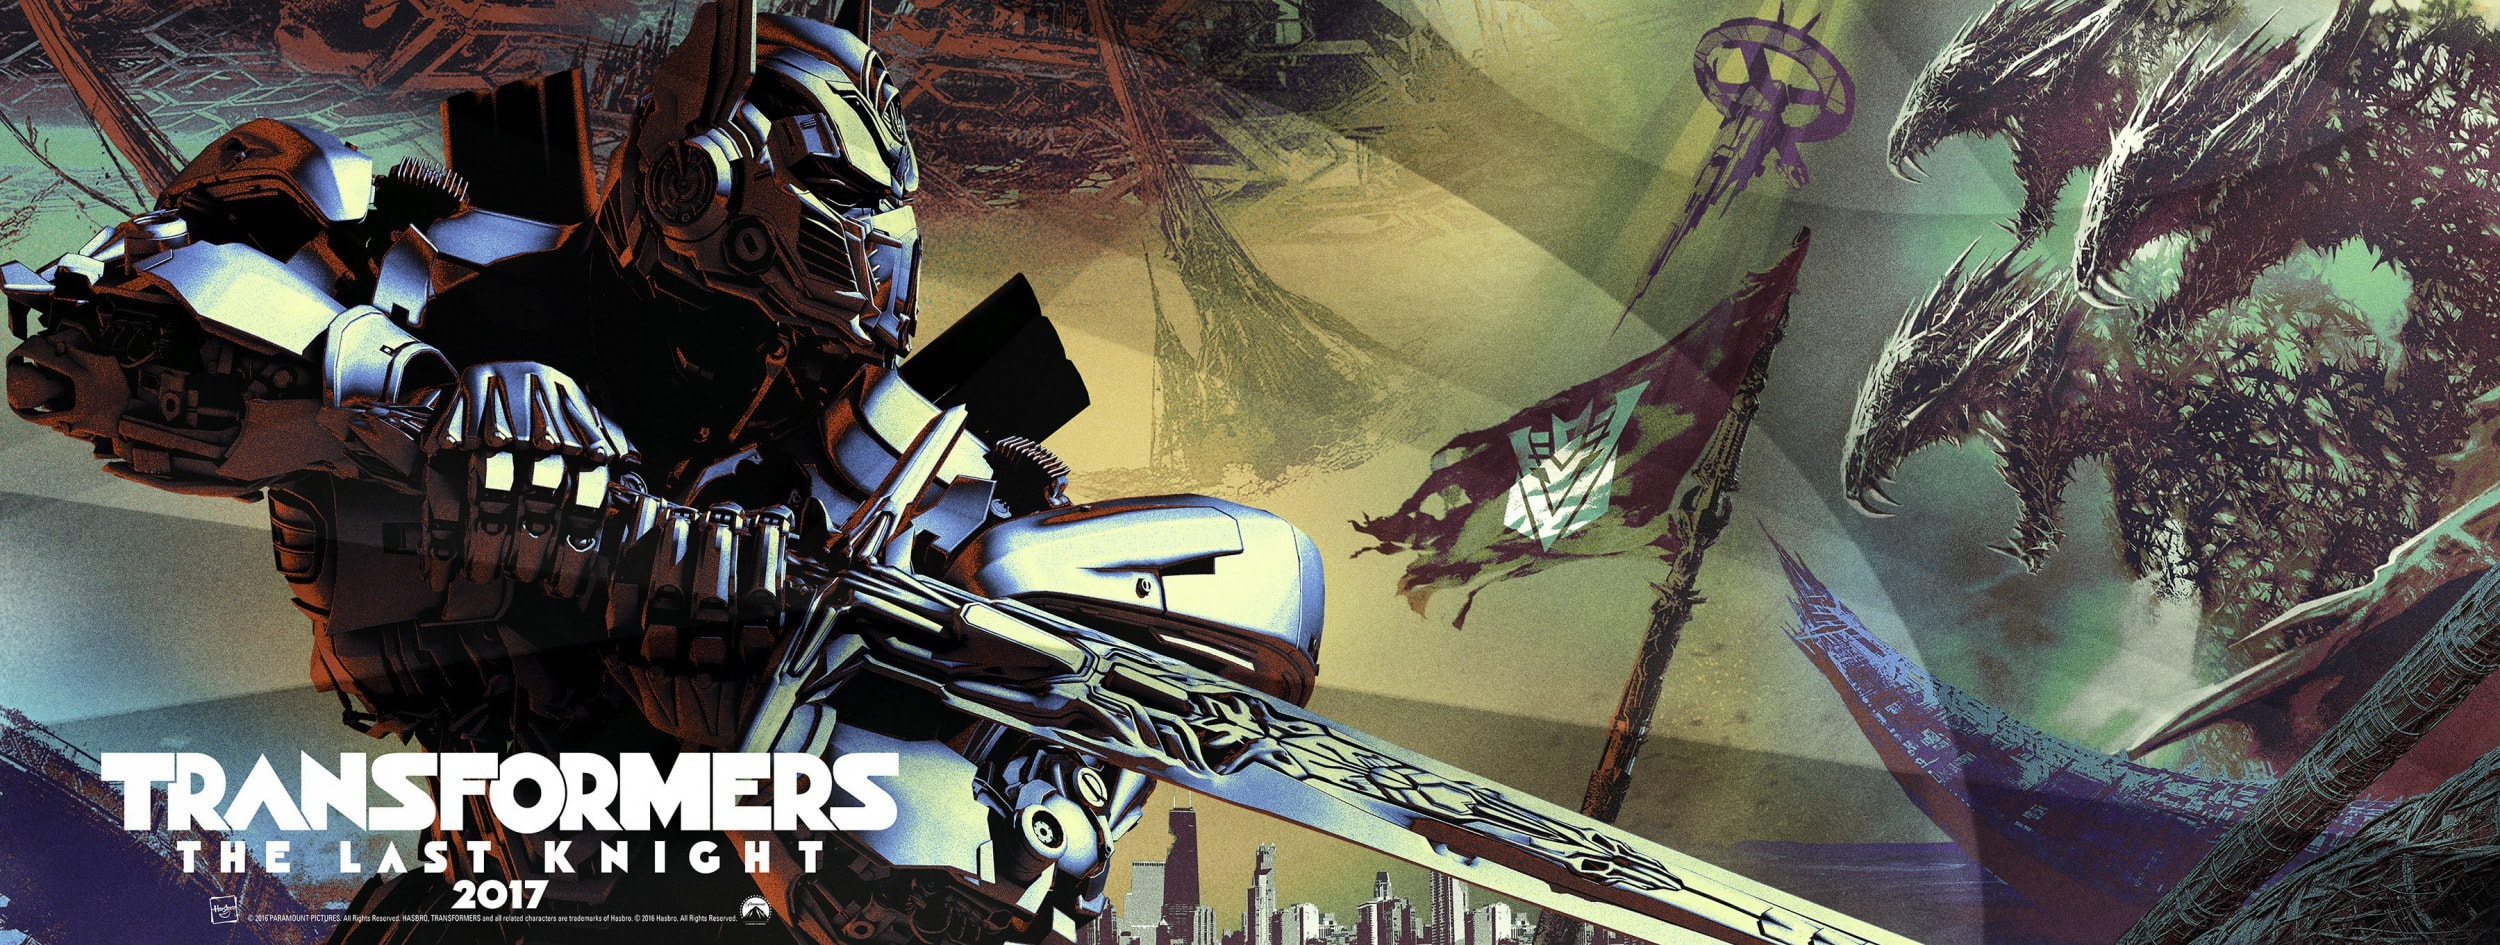 Transformers: The Last Knight Background